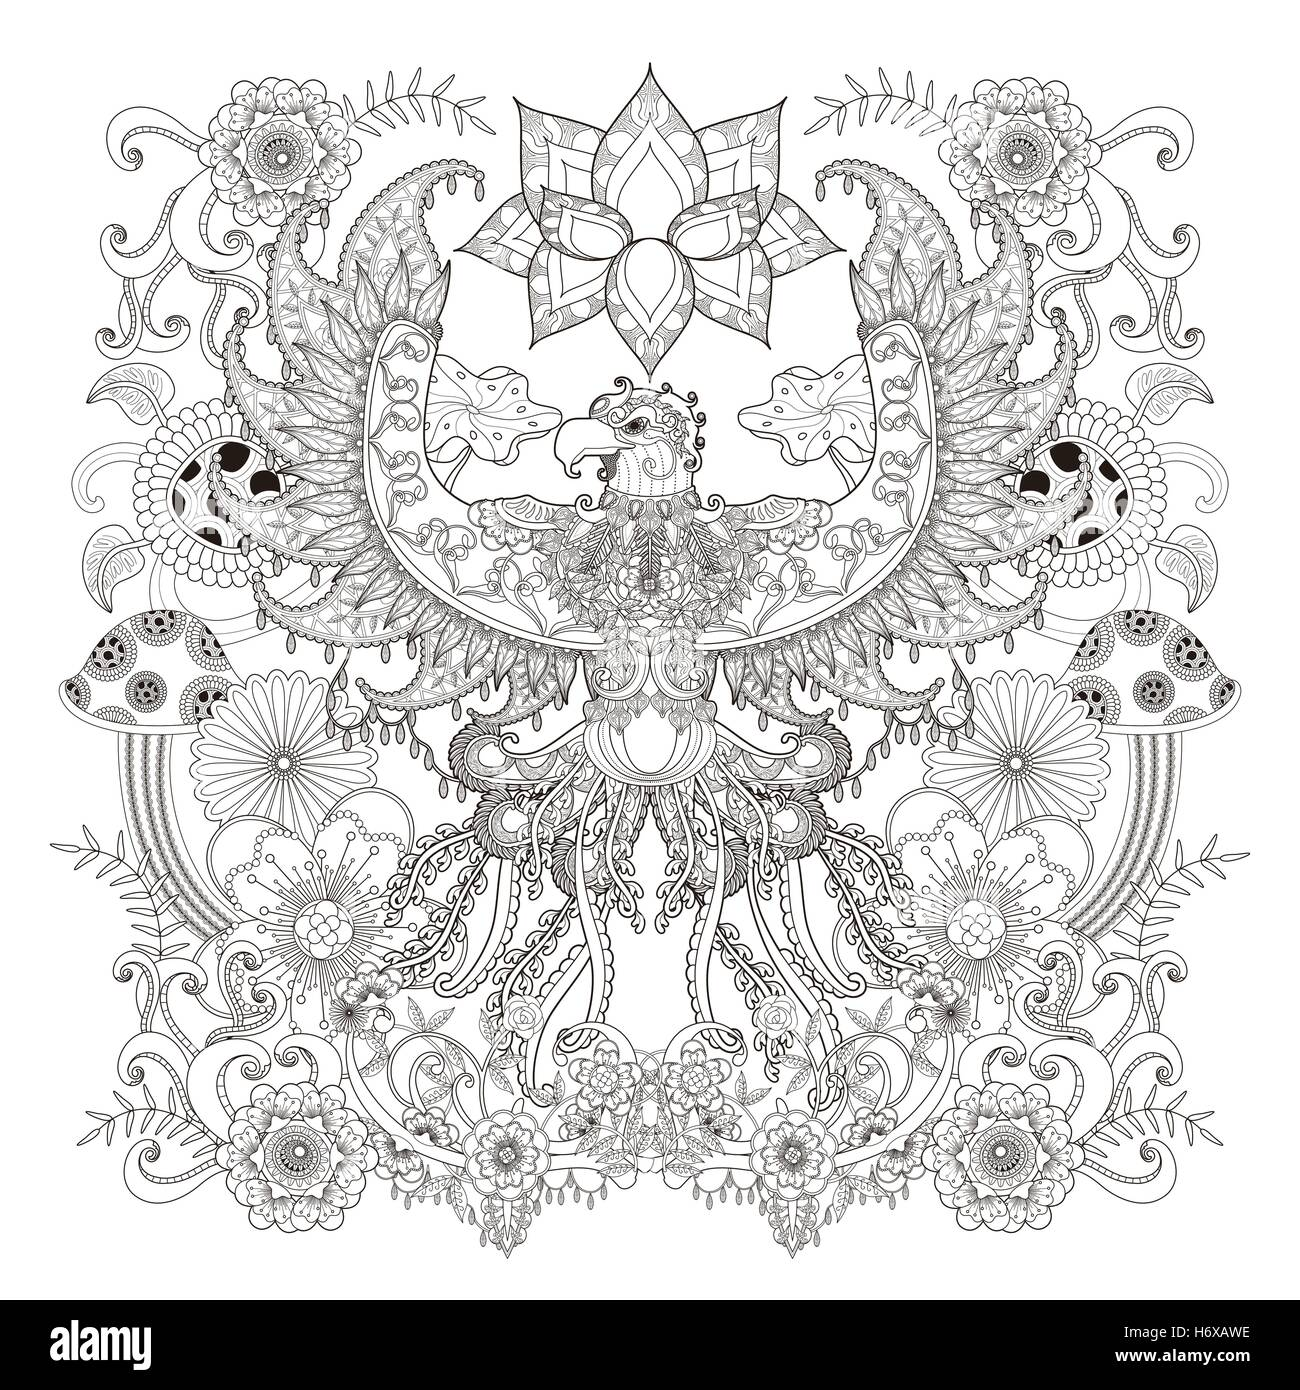 Stress relief coloring pages - Majestic Eagle Adult Coloring Page Open Wings Eagle With Floral Elements Decoration Stress Relief Page For Coloring